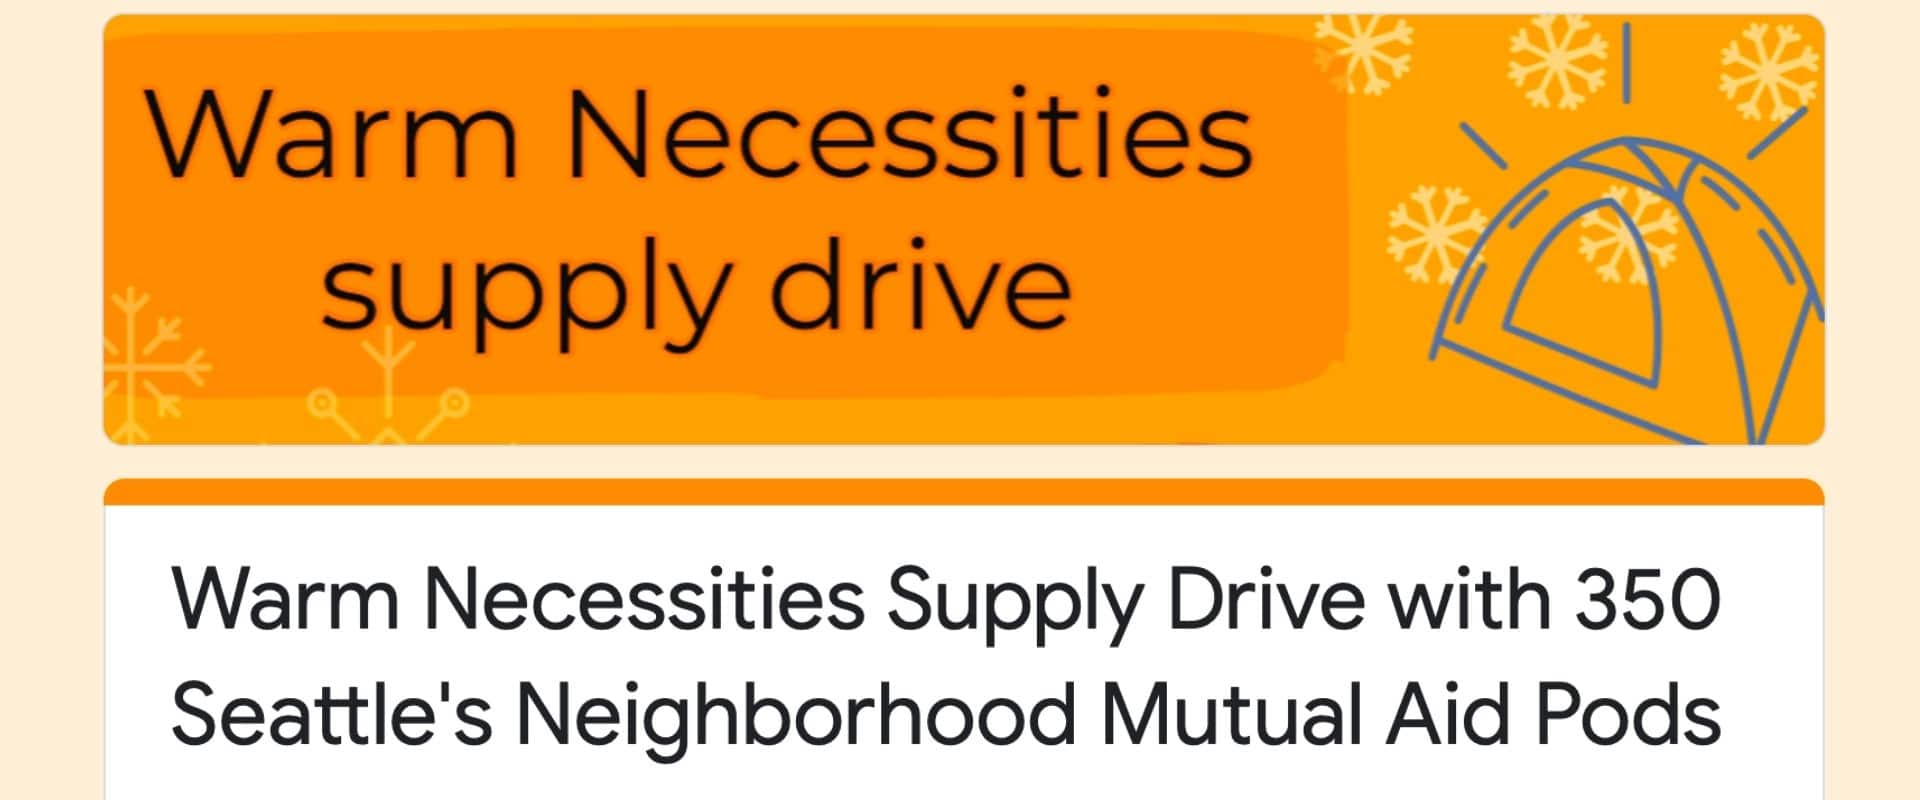 Warm necessities donation drive seattle 2020